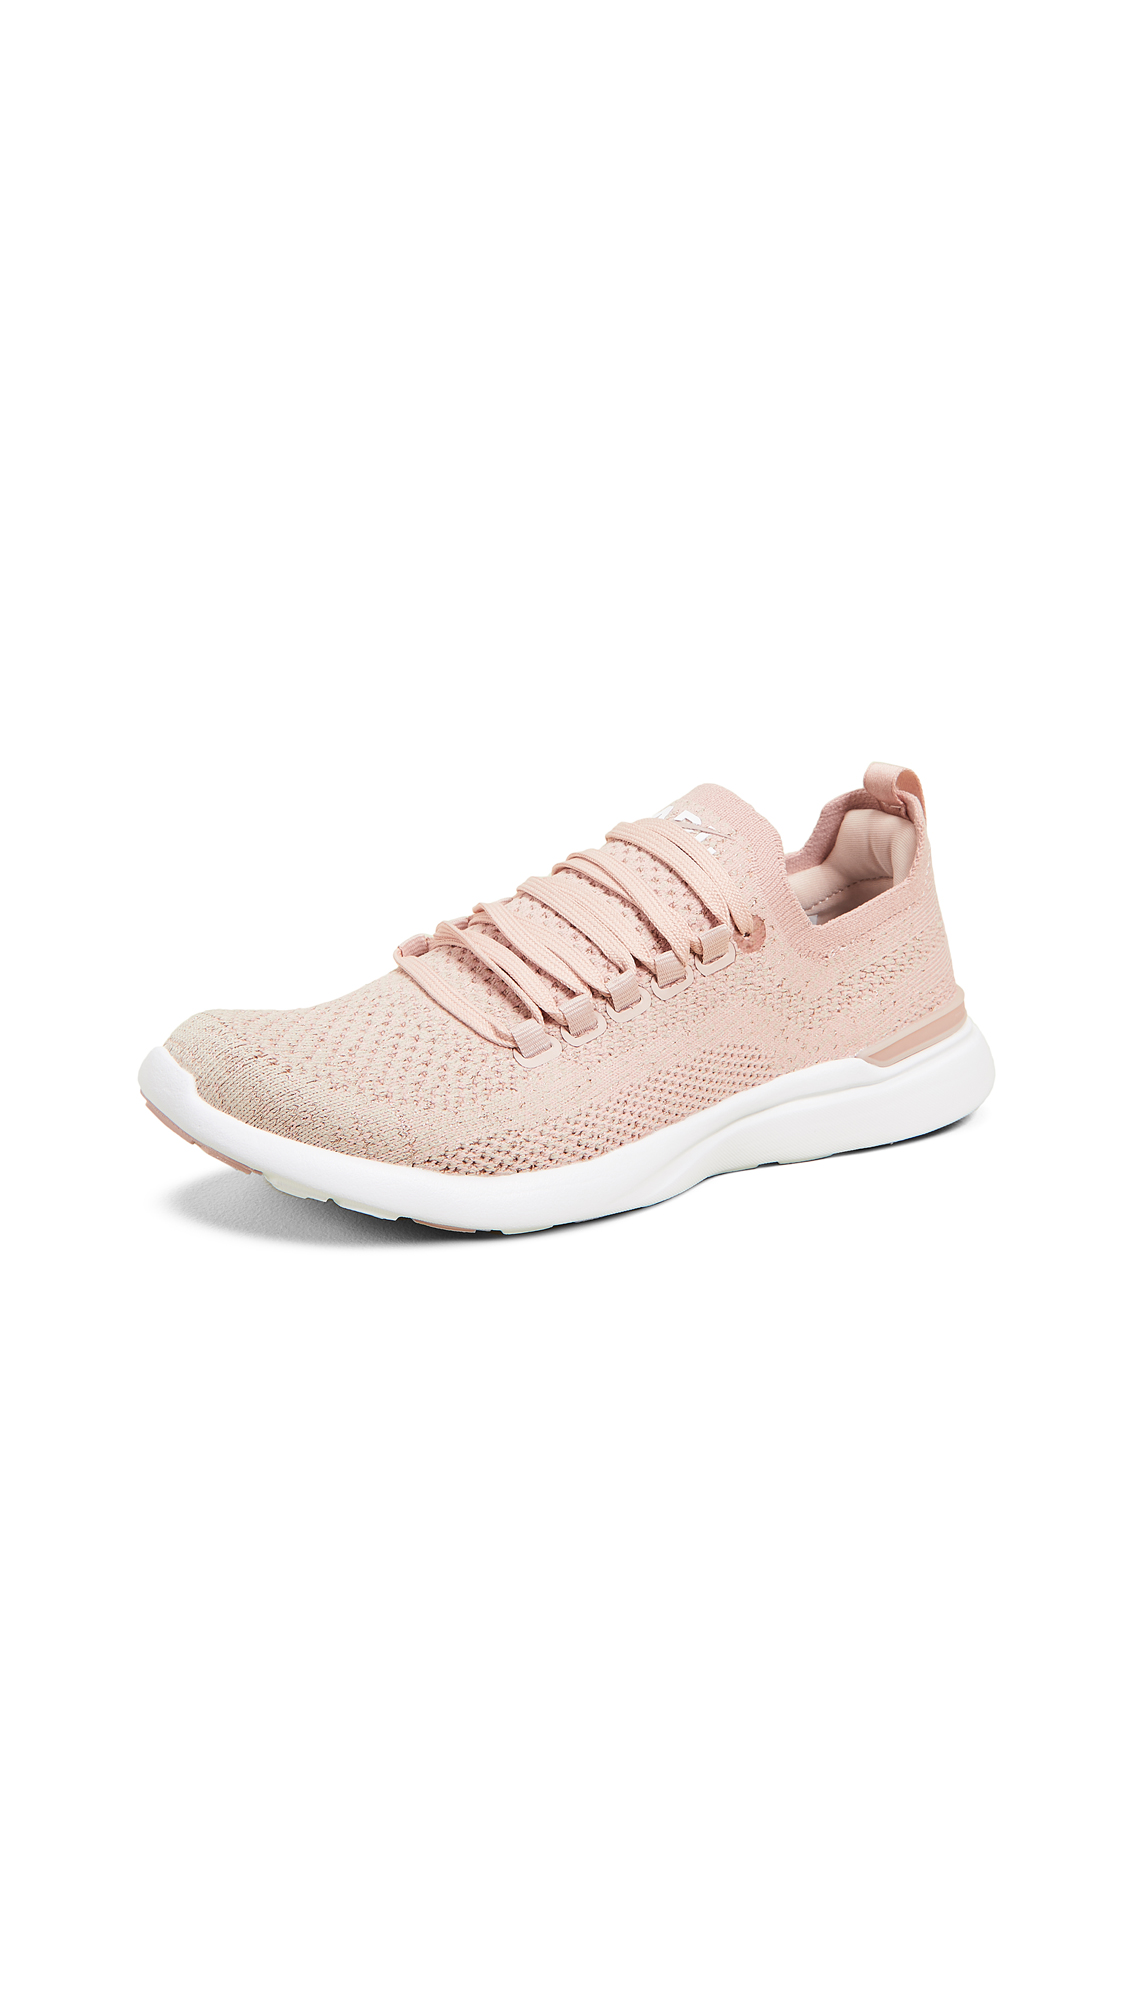 APL: Athletic Propulsion Labs TechLoom Breeze Sneakers - Rose Dust/Rose Gold/White